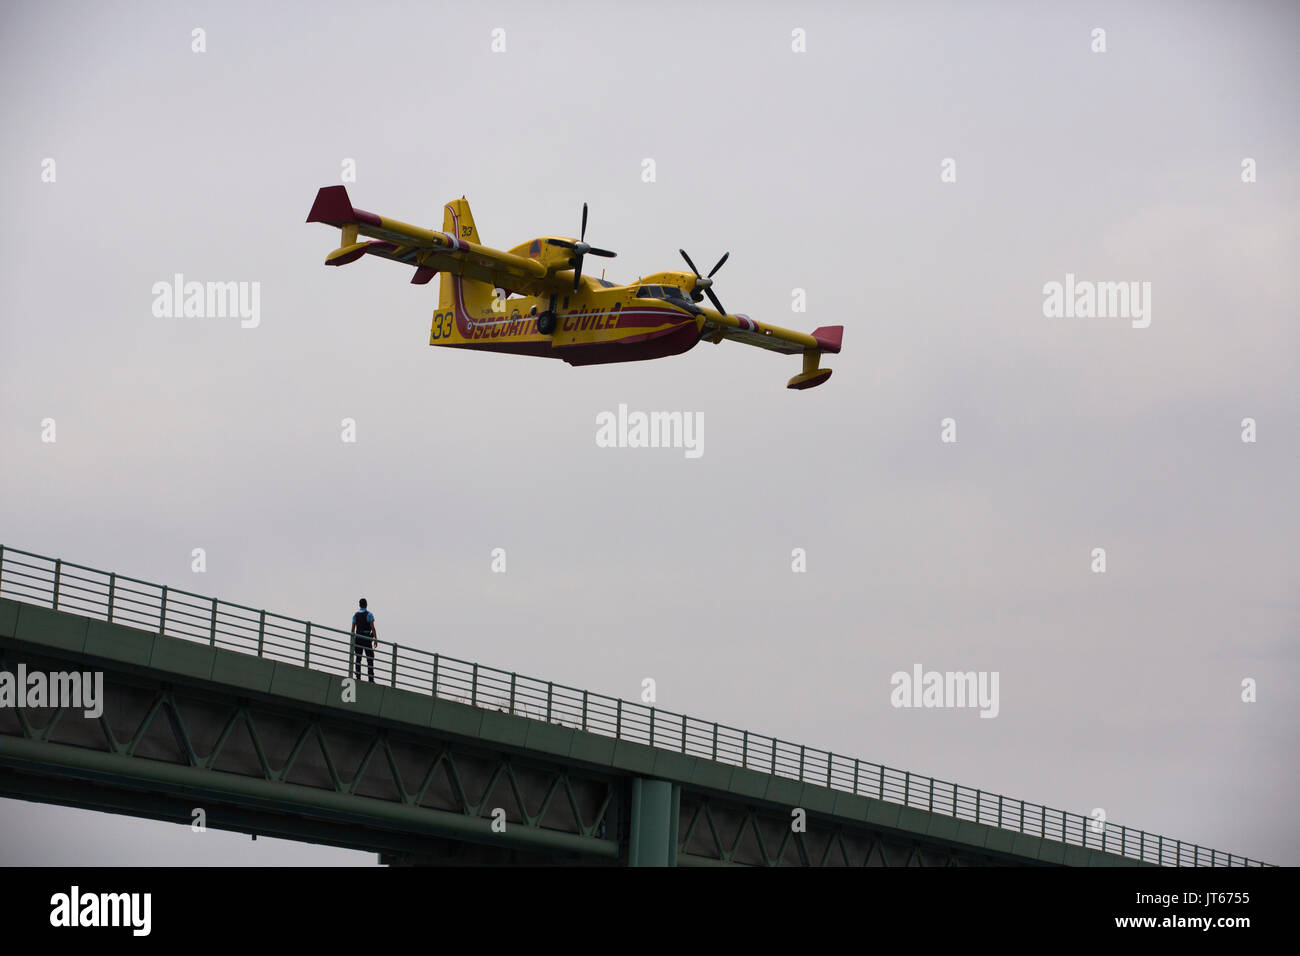 Bathers watch Securite Civile aircarft collecting water at Lac de Saint-Cassien to put out wildfires  in Cote d'Azur, Southern France, Mediterranean - Stock Image